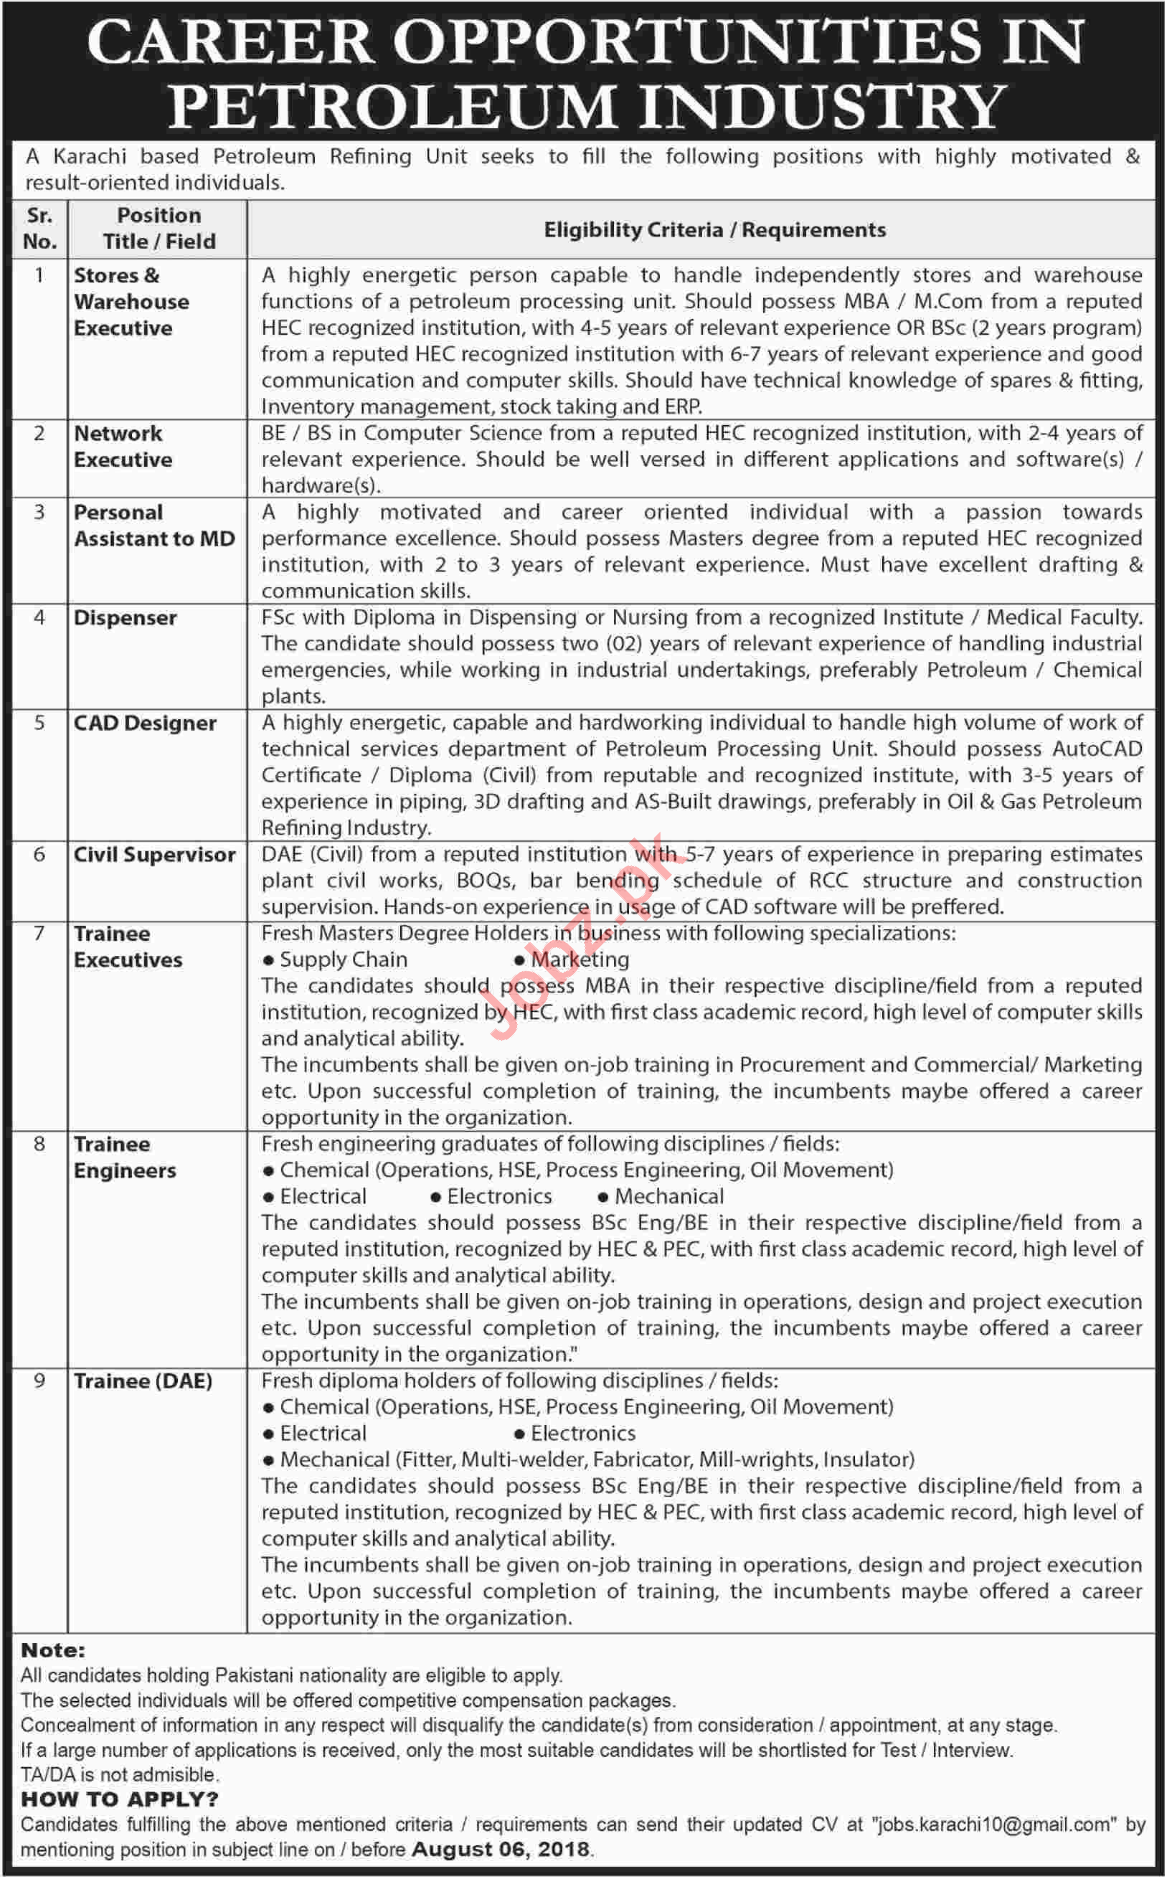 Job Opportunities in Petroleum Industries